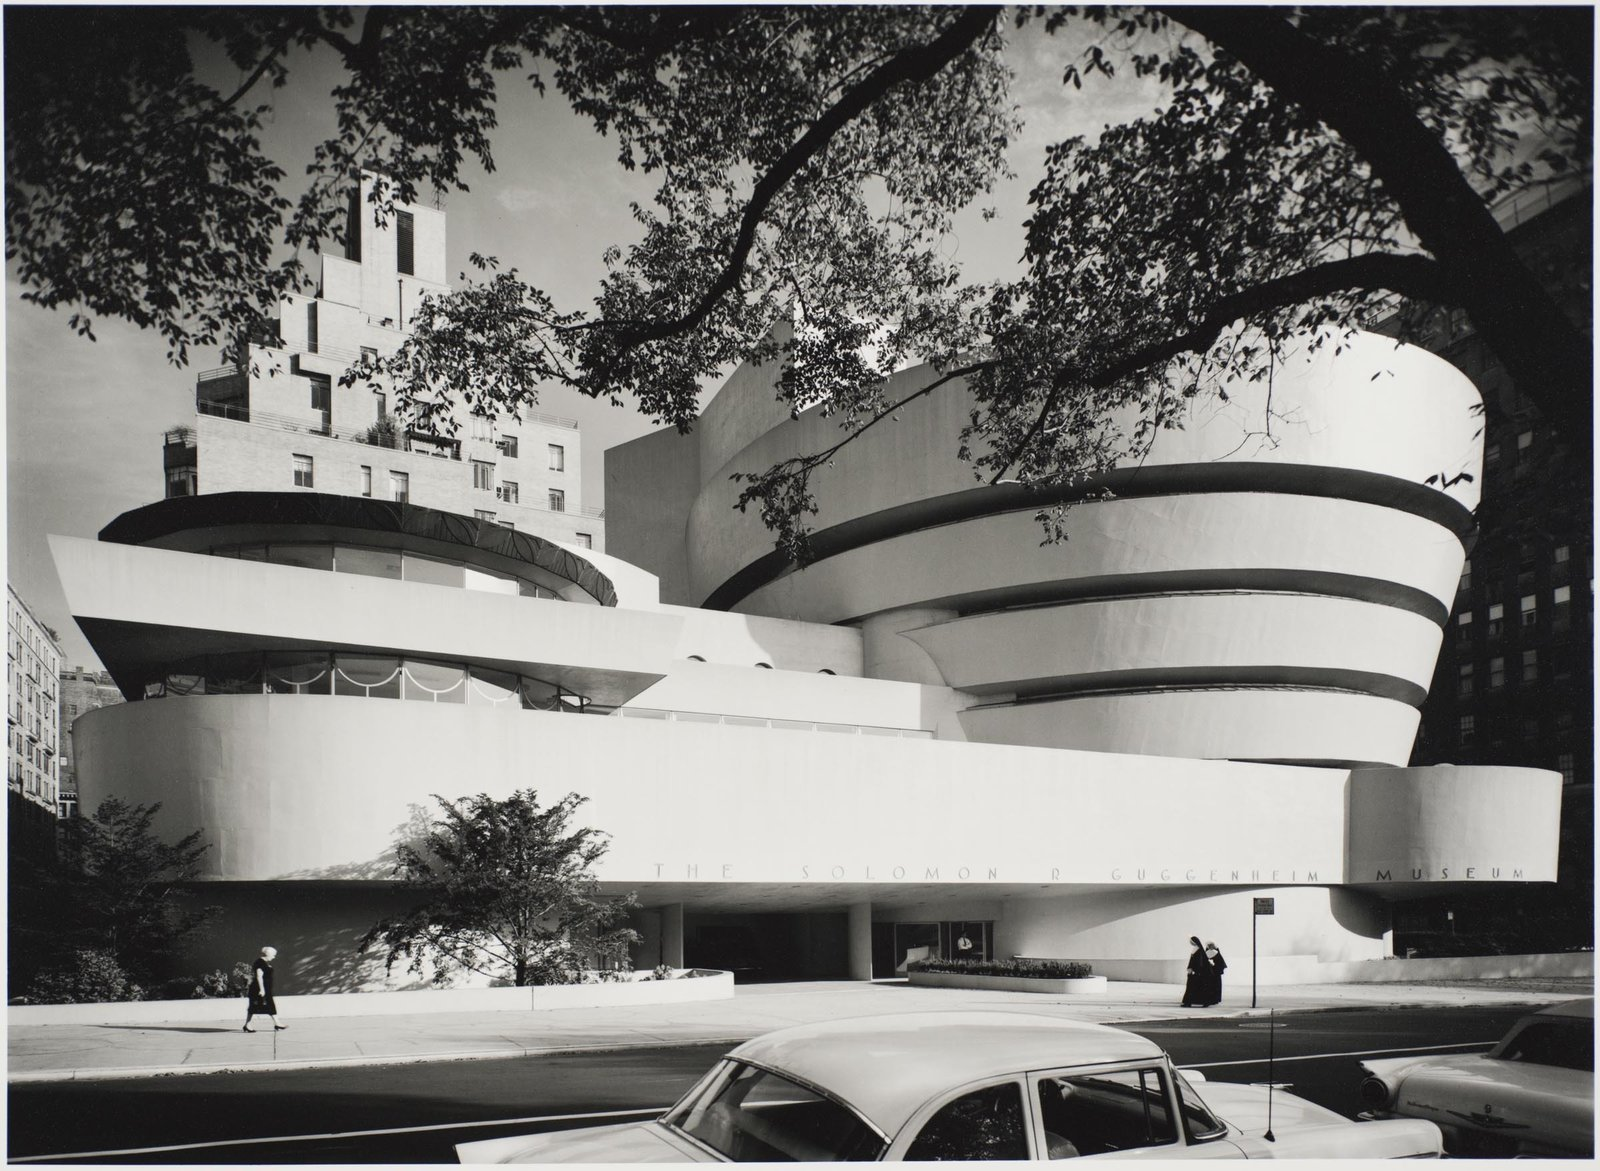 Solomon R. Guggenheim Museum, designed by Frank Lloyd Wright, photographed in 1959. Gelatin silver print. Image courtesy of the Carnegie Museum of Art, copyright Ezra Stoller/Esto, Yossi Milo Gallery.  Photo 4 of 10 in 10 Frank Lloyd Wright Buildings We Love from Modernism Through the Viewfinder: The Photography of Ezra Stoller